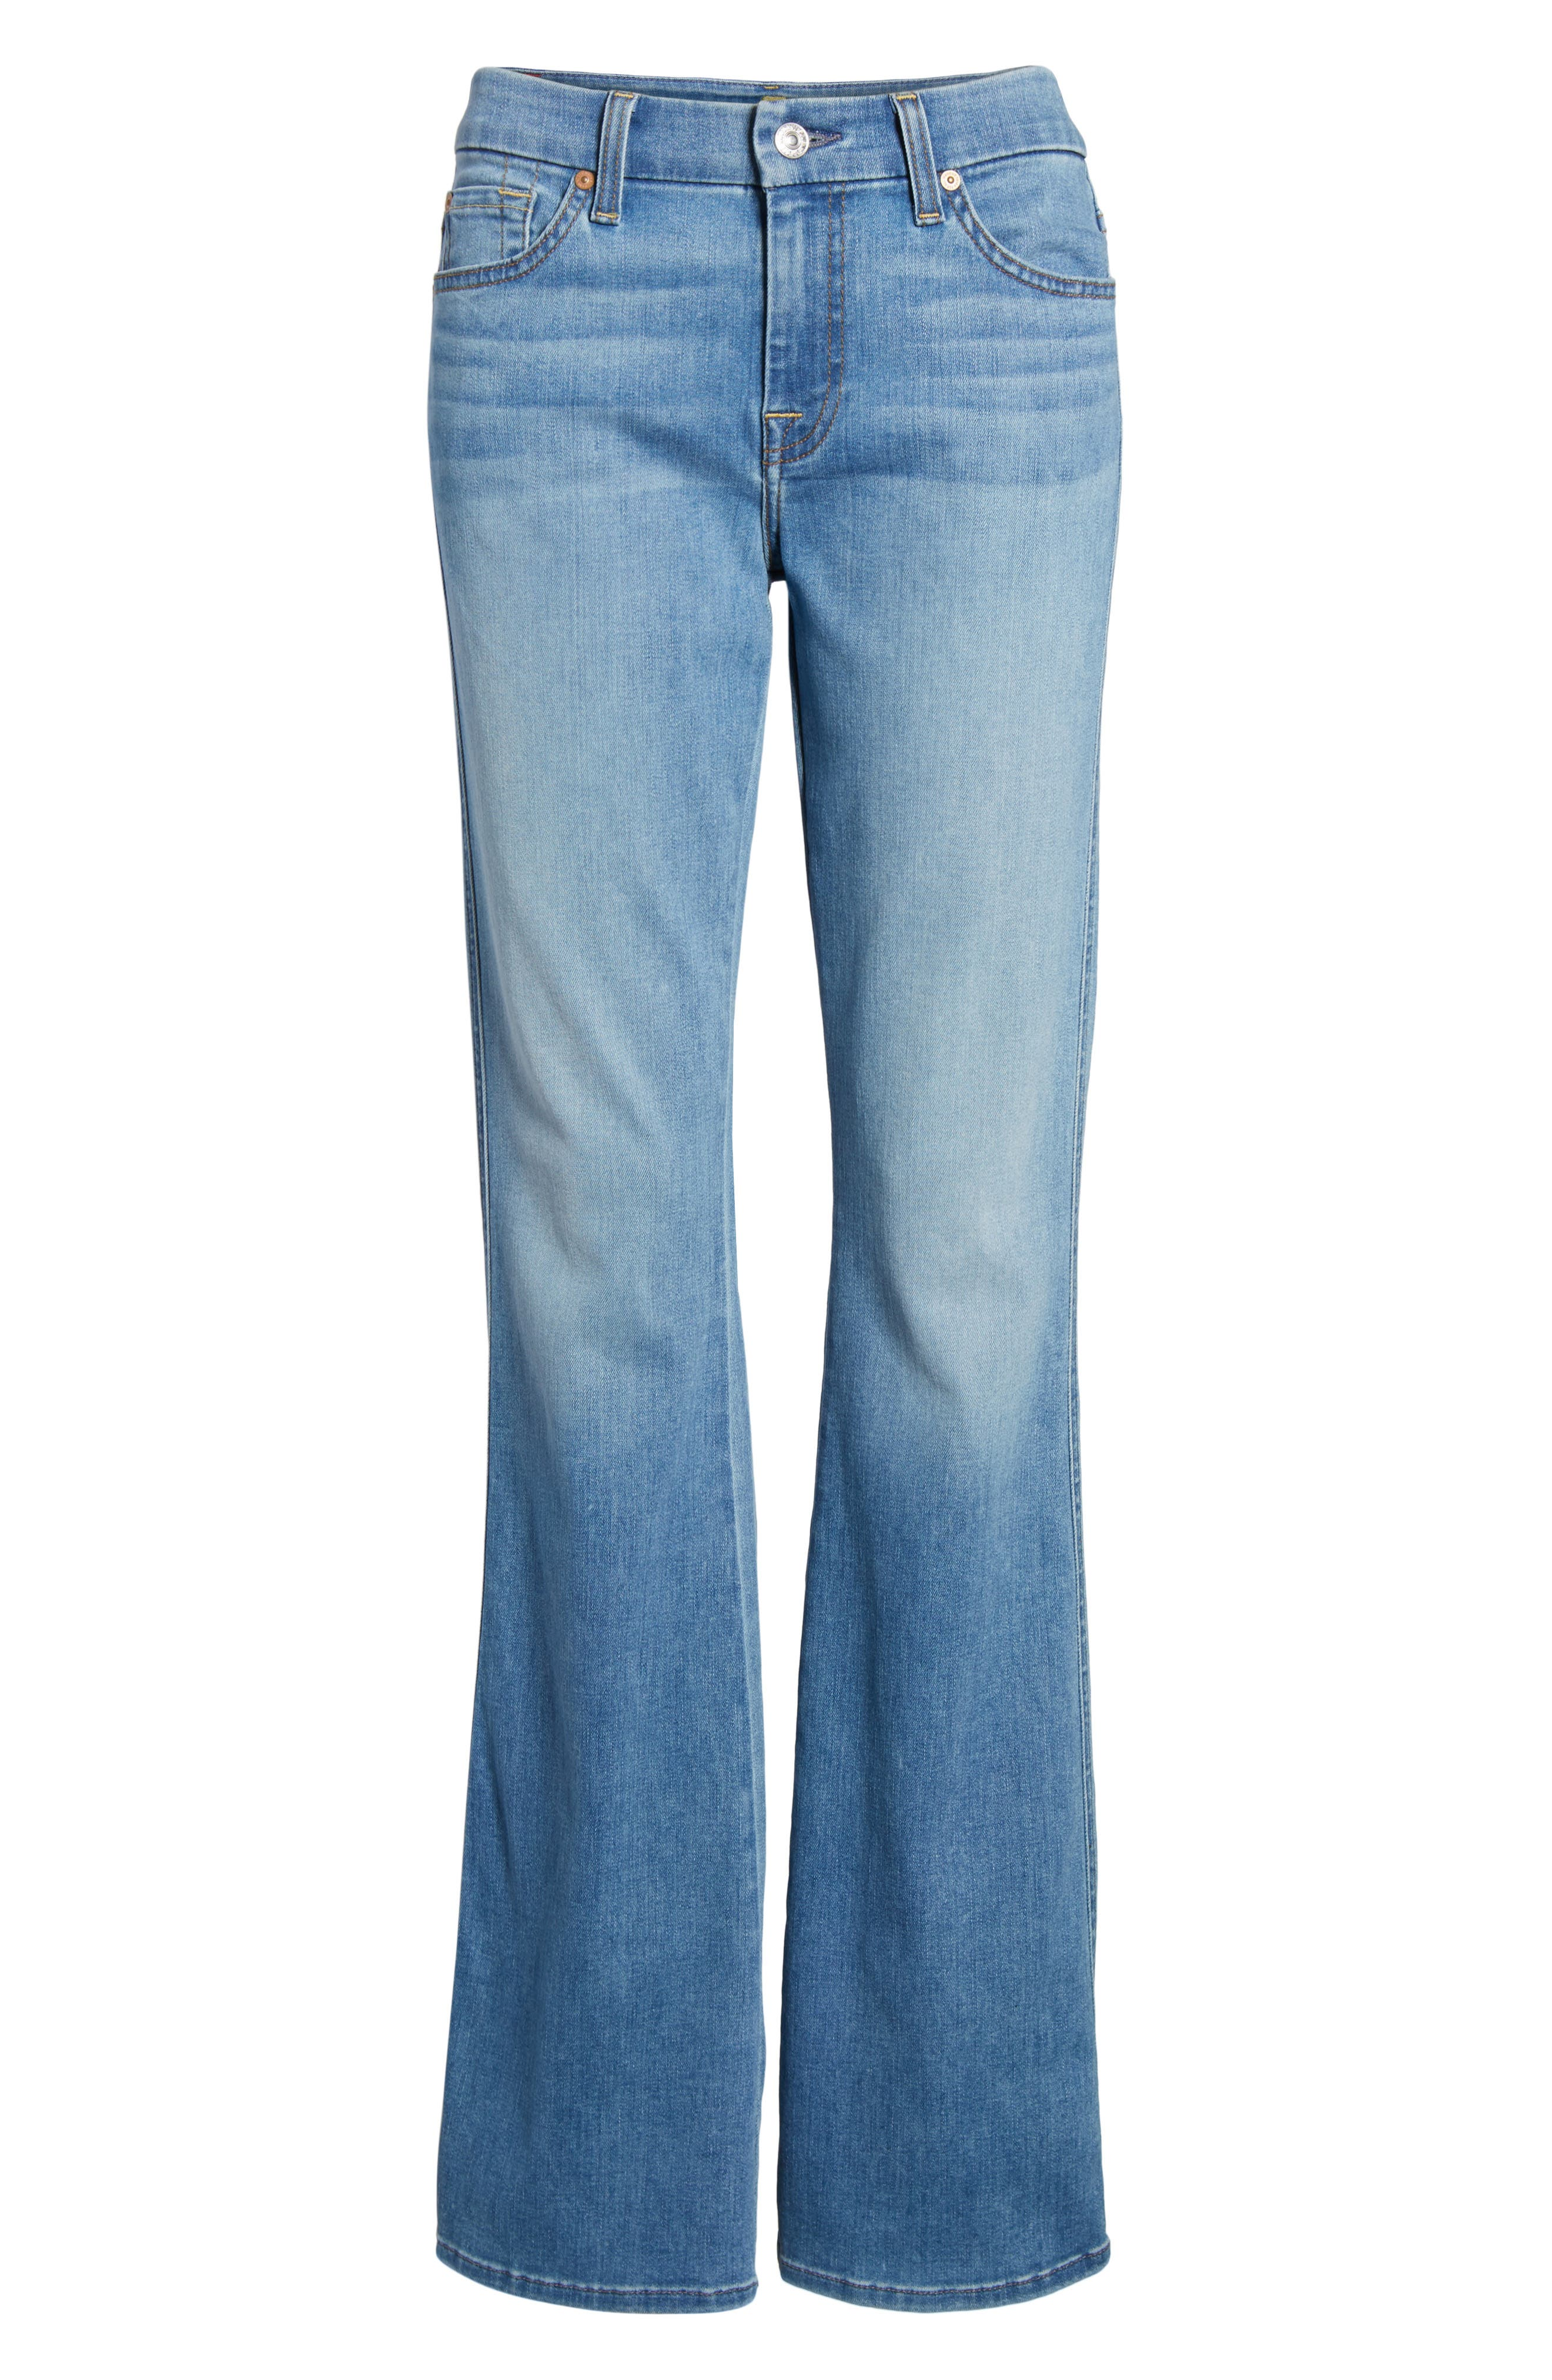 7 FOR ALL MANKIND<SUP>®</SUP>, A-Pocket Flare Leg Jeans, Alternate thumbnail 7, color, 401